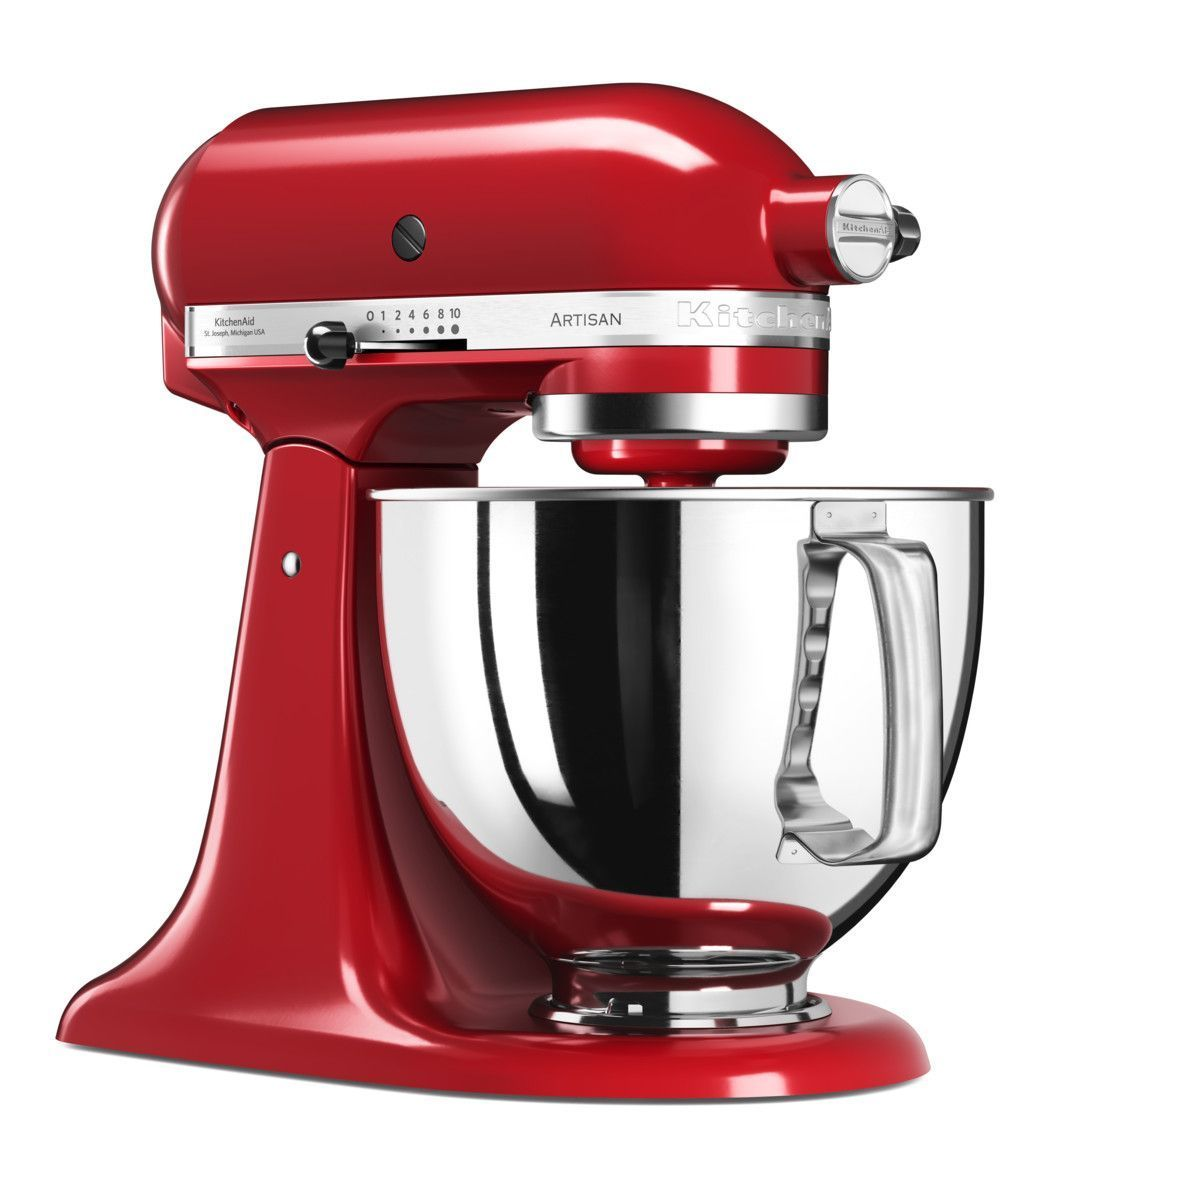 Kitchenaid Artisan Stand Mixer 5ksm125 Empire Red Kitchenaid Artisan Kitchen Aid Kitchenaid Artisan Stand Mixer